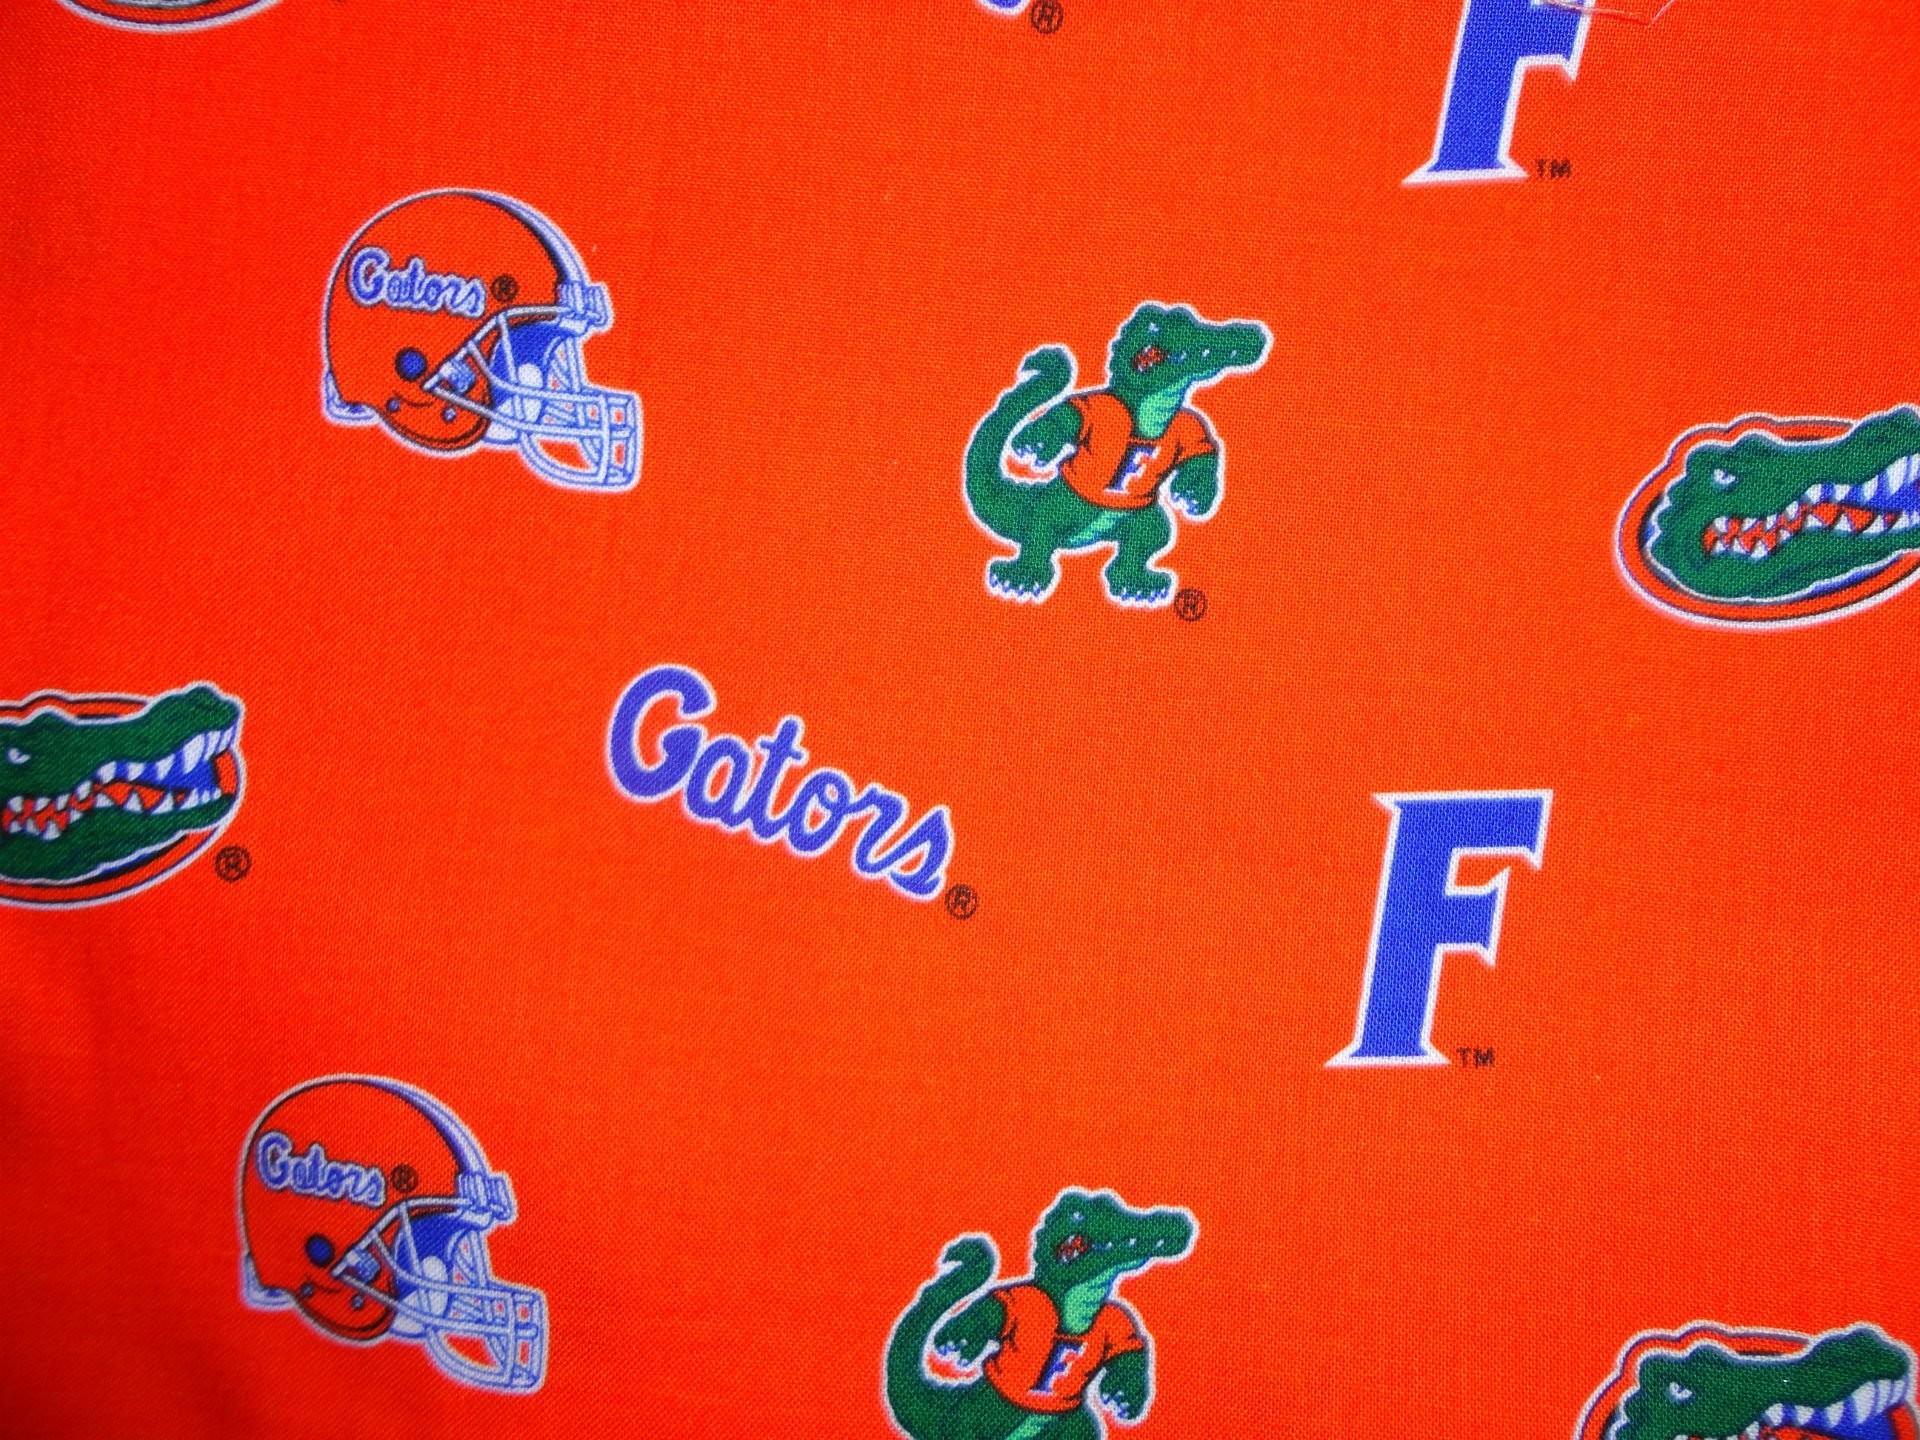 1920x1440 FLORIDA GATORS college football wallpaper background